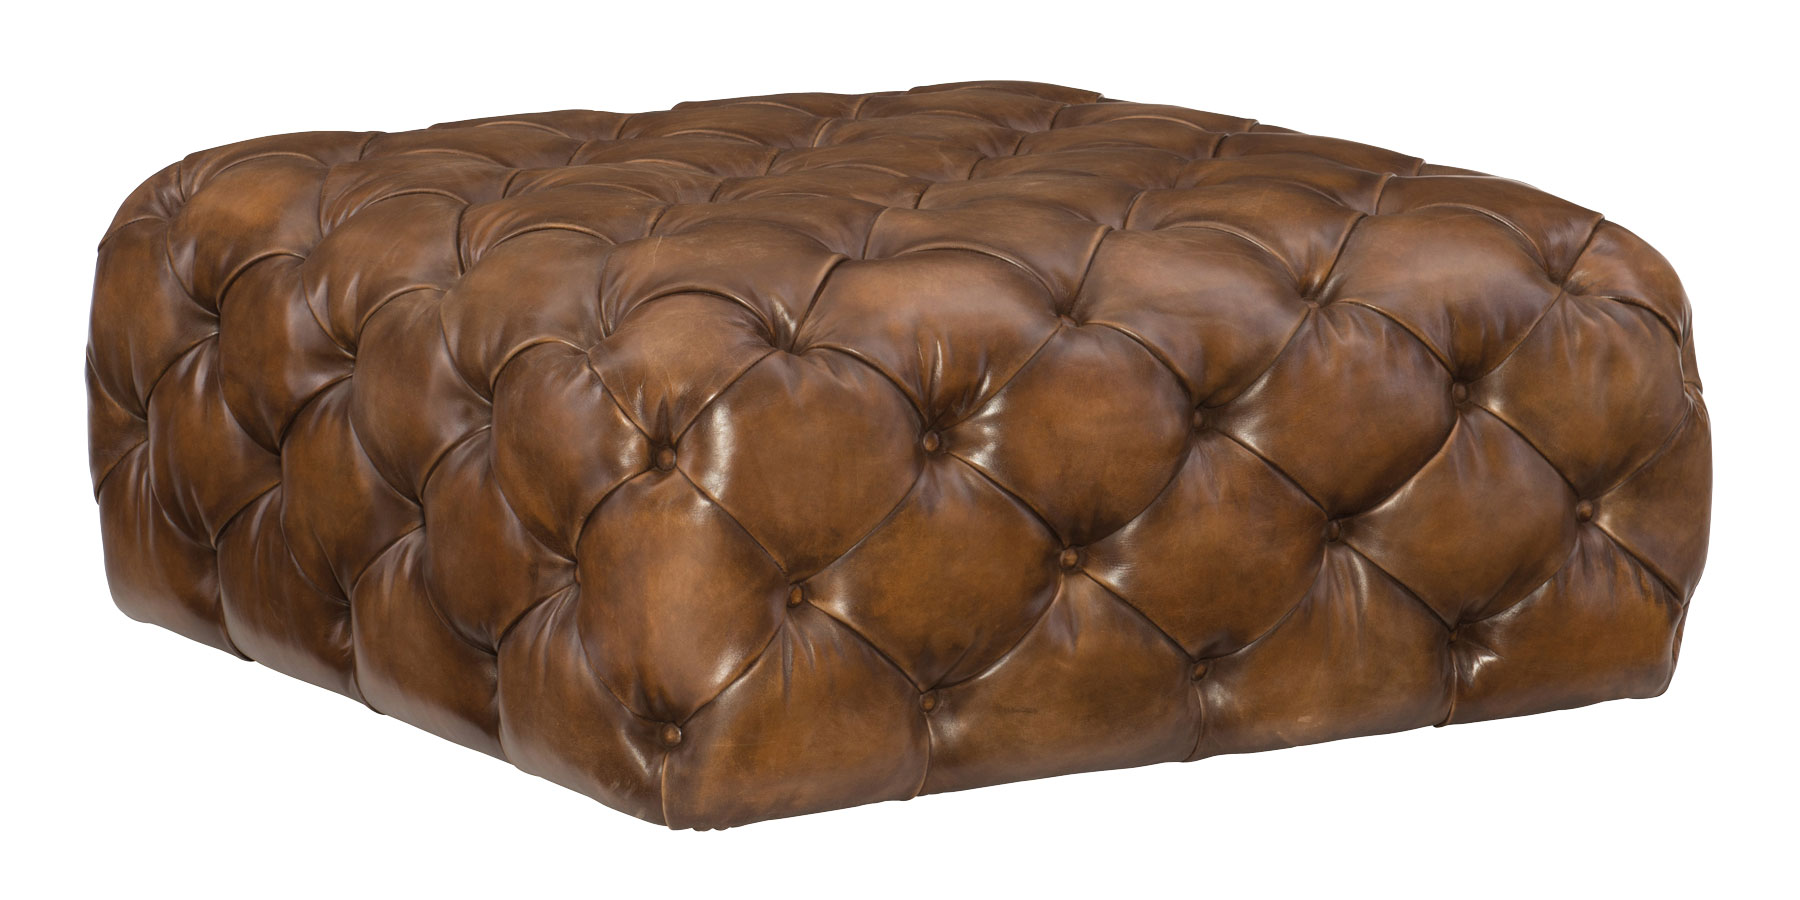 Large Square Tufted Leather Coffee Table Ottoman